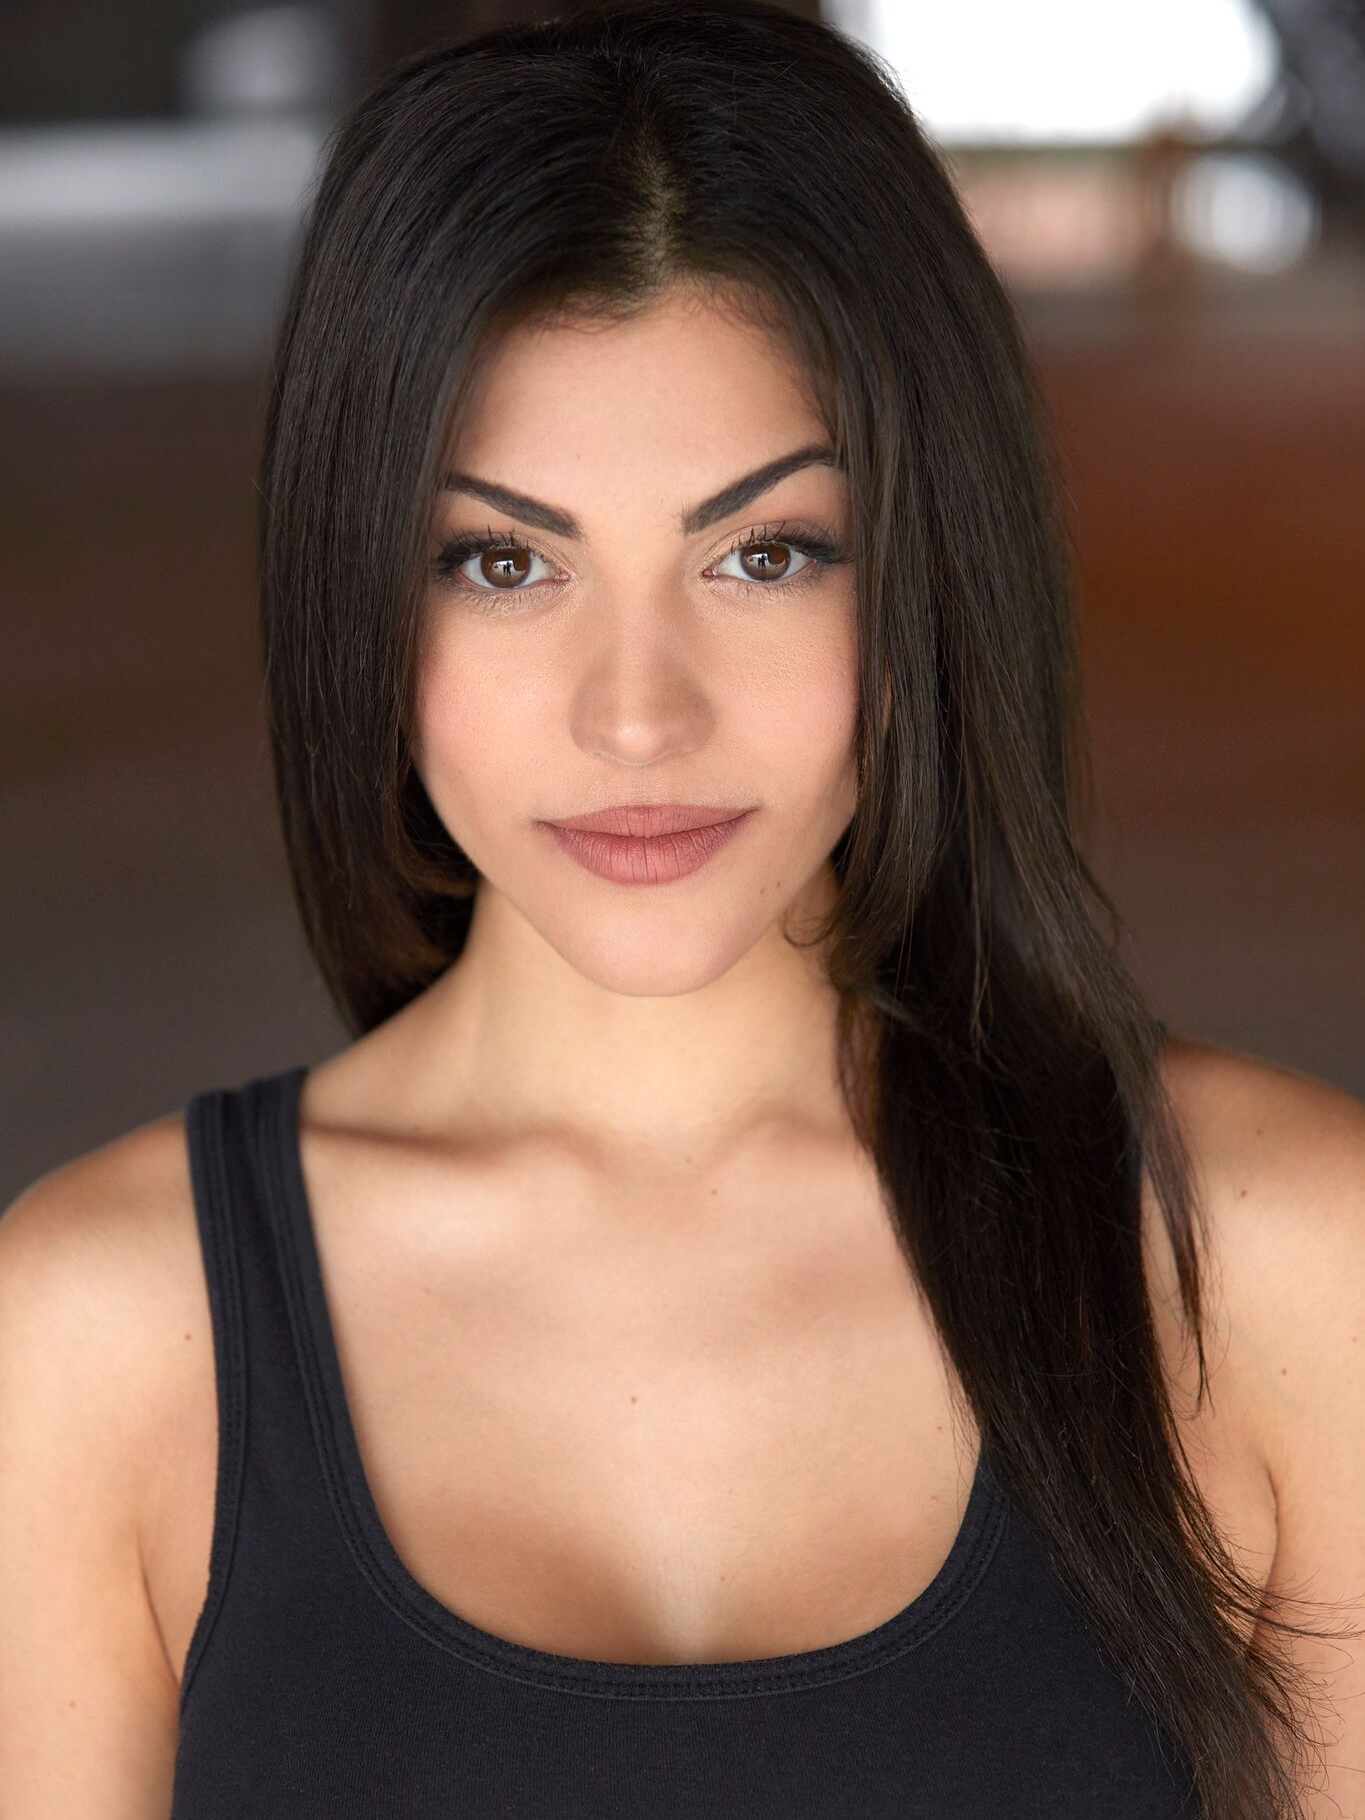 Orit - Height: 5'7Origin: Calabasas, CABio: Bartender, server, host. Orit does it all while pursuing her acting career.